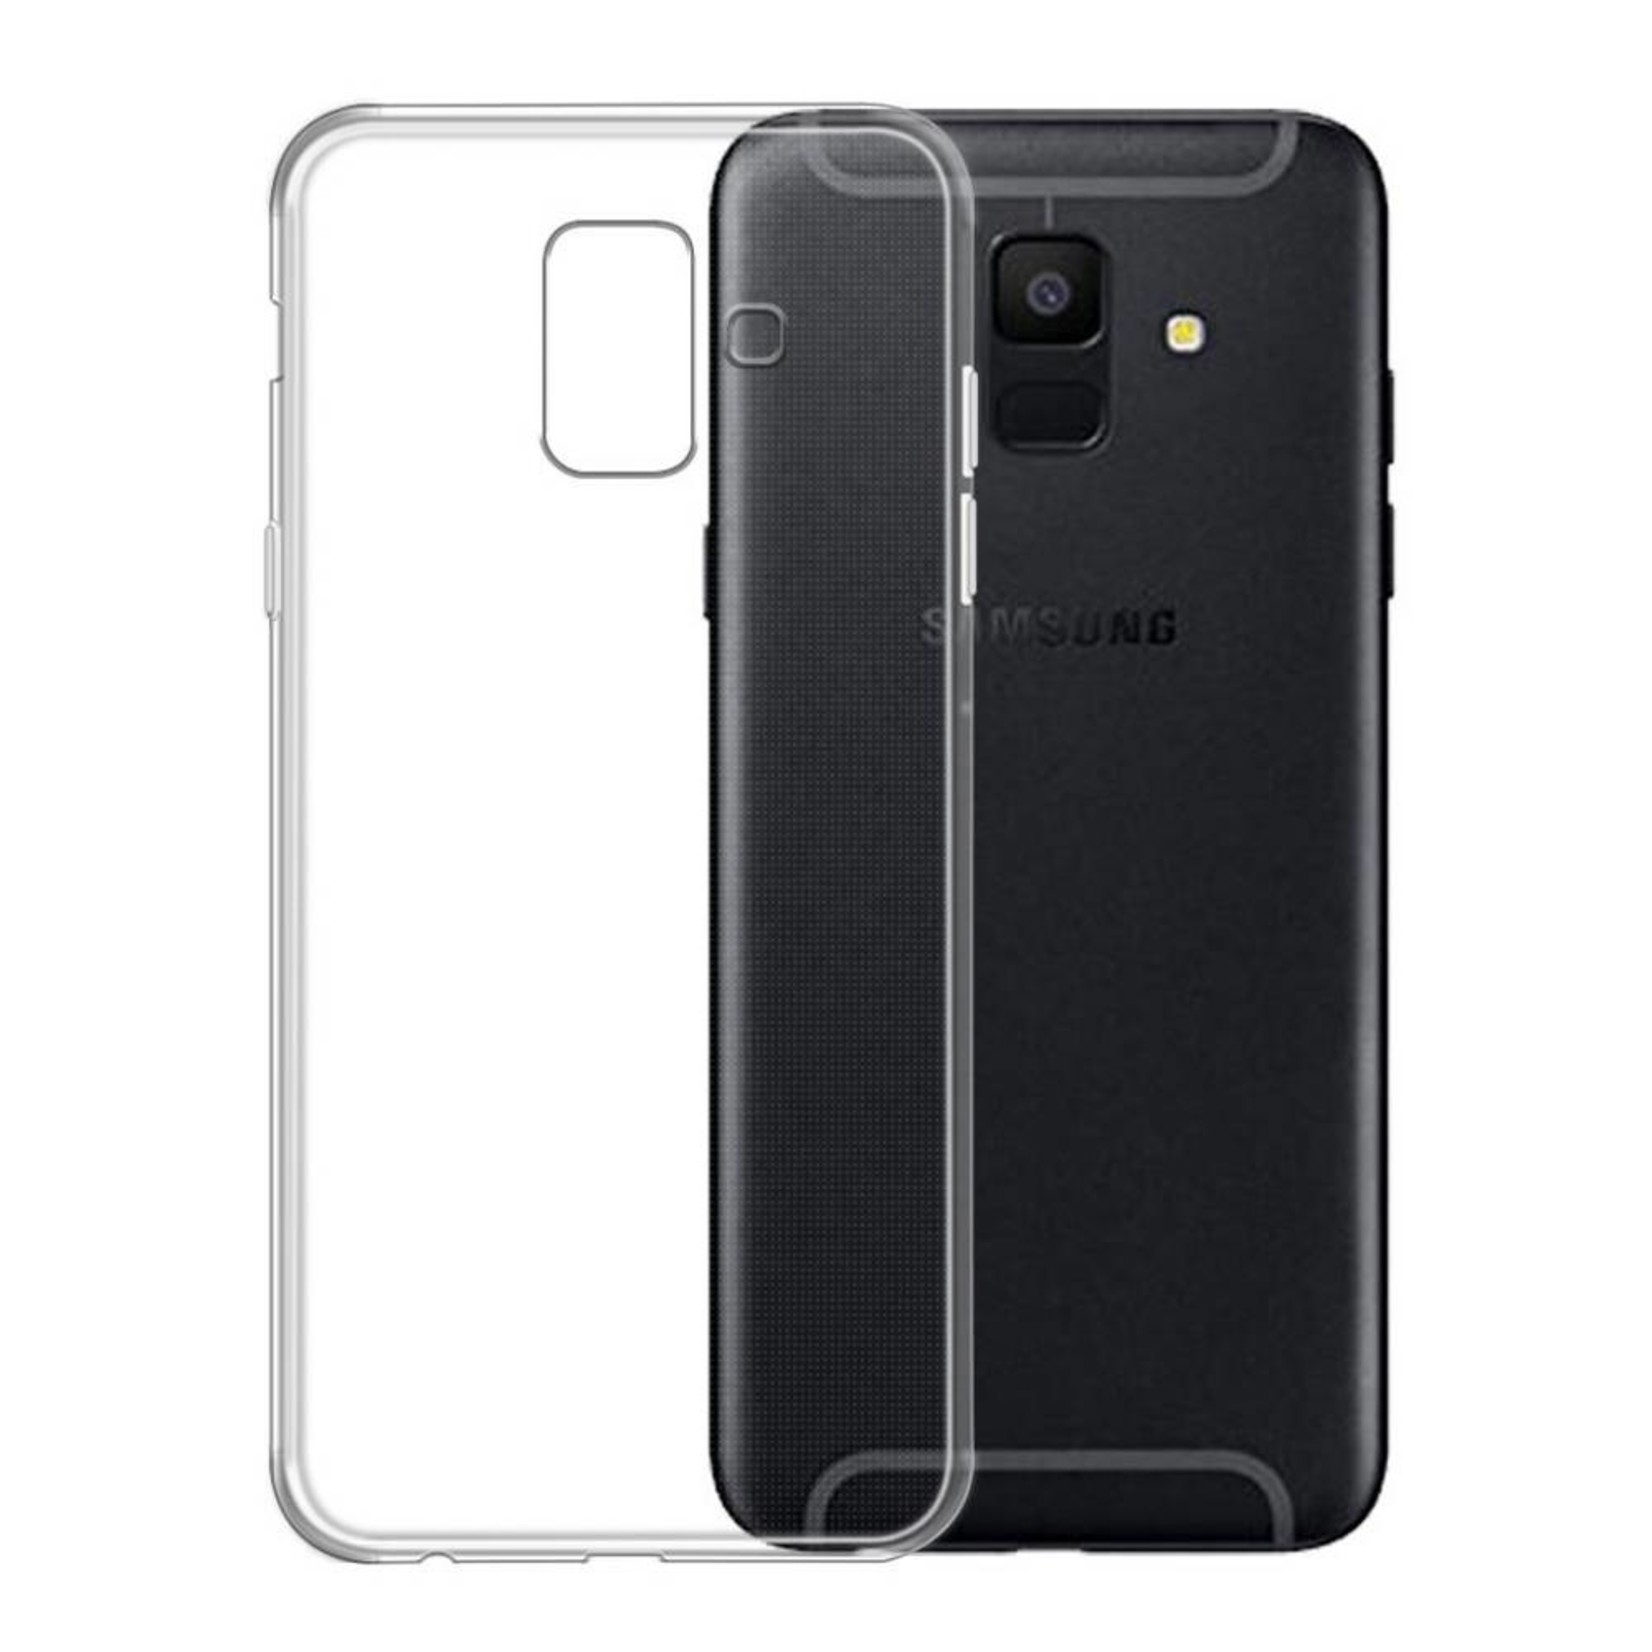 Colorfone Hoesje Coolskin3T voor Samsung A6 Plus Transparant Wit